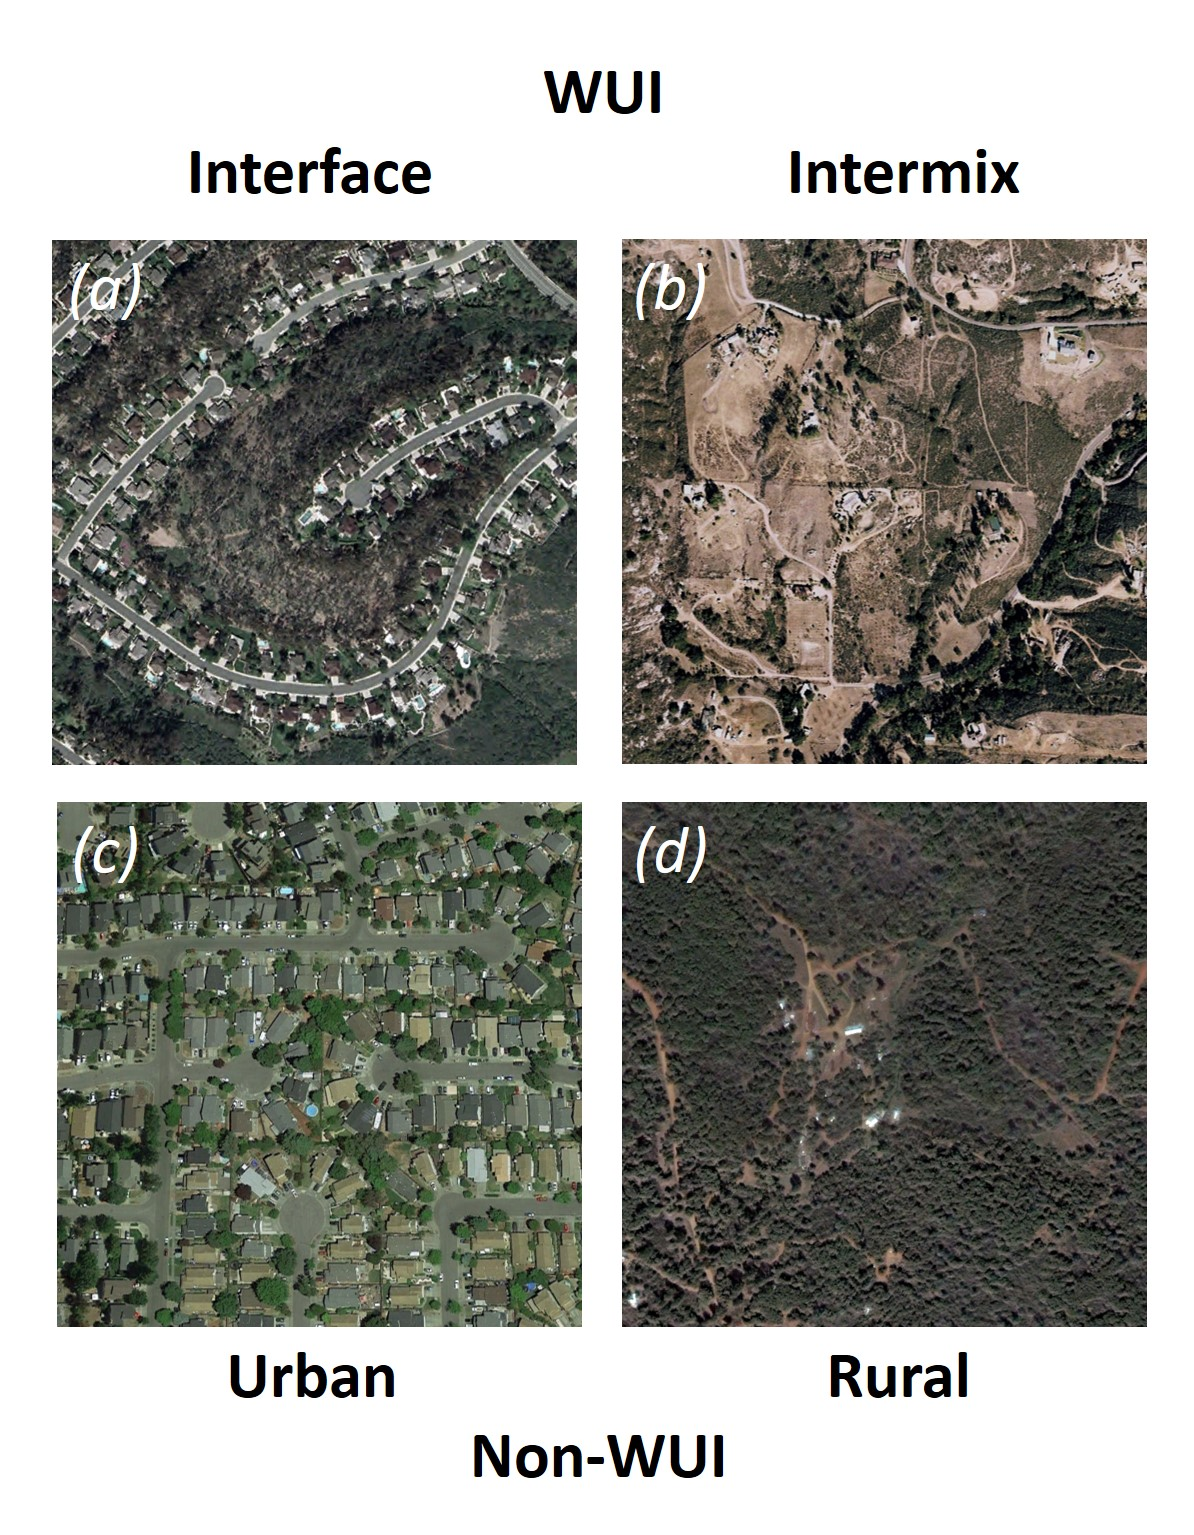 Images of (a) interface wildland-urban interface (WUI) (in the2003 Cedar fire); (b) intermix WUI (in the 2007 Witch fire); (c) urban non-WUI (in the 2017 Tubbs fire); and (d) rural non-WUI (in the 2008 BTU Lightning complex).